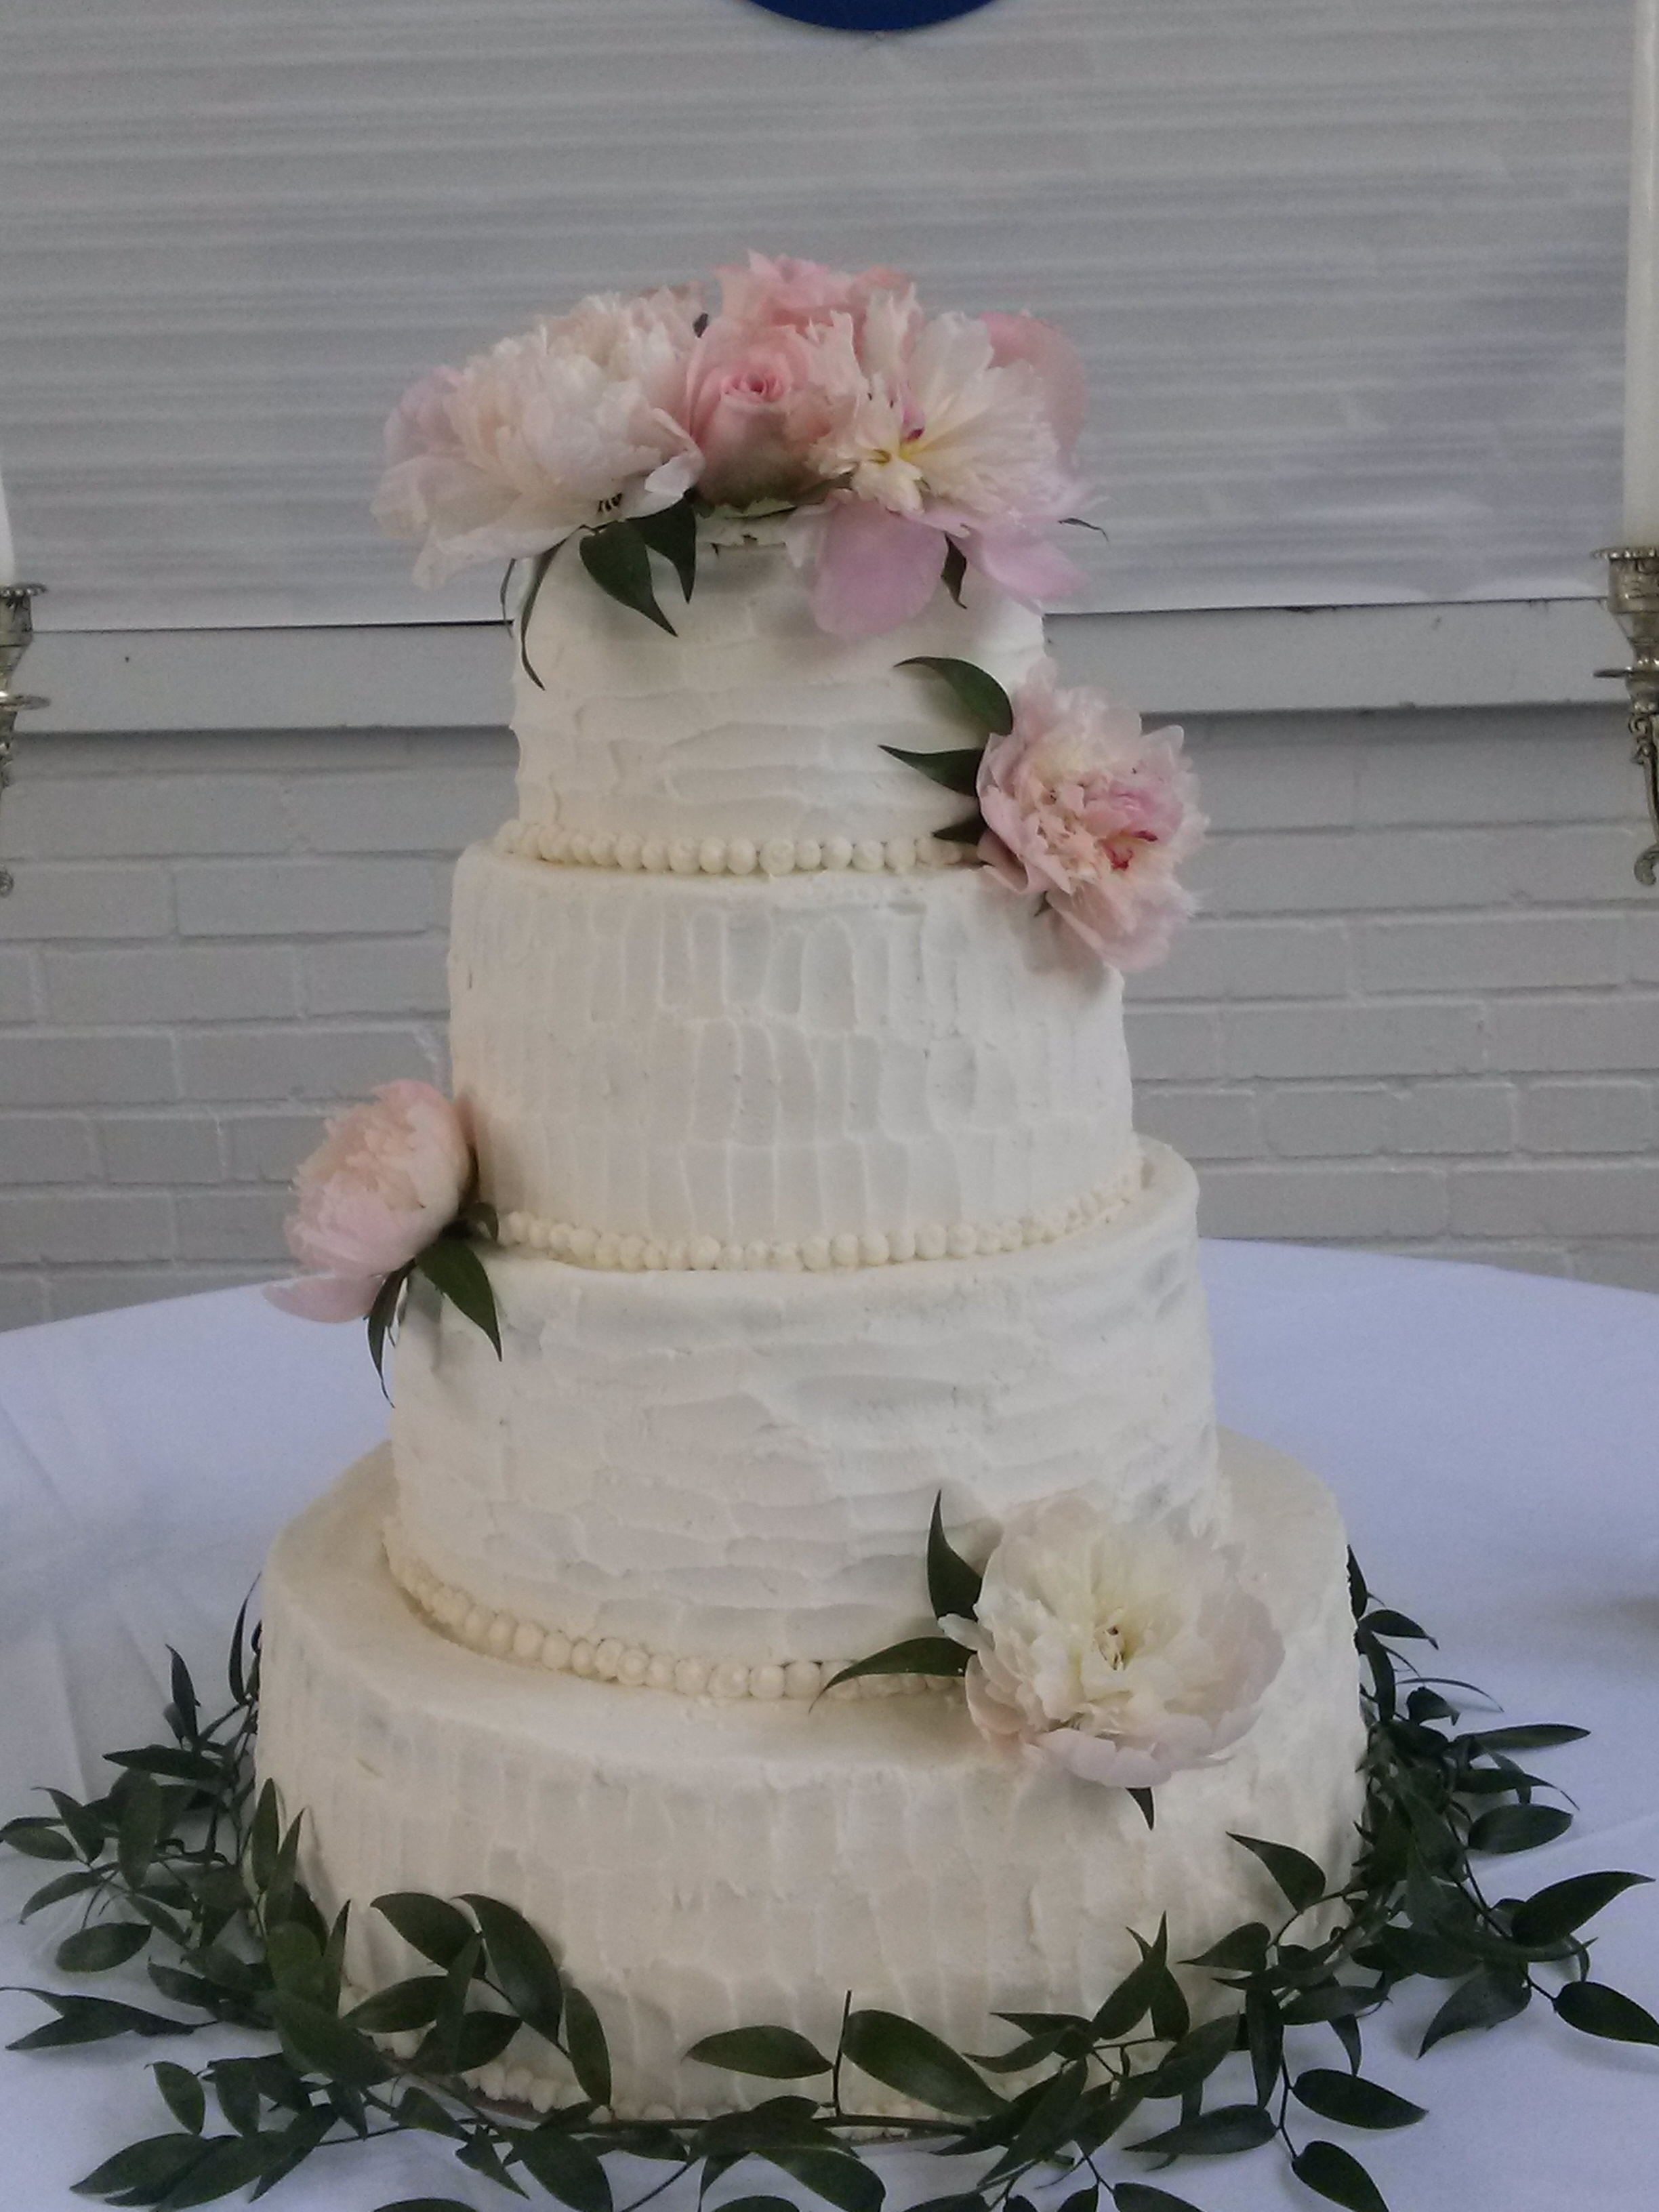 4 Tiered Round Wedding Cake Yellow Cake With Indydebis